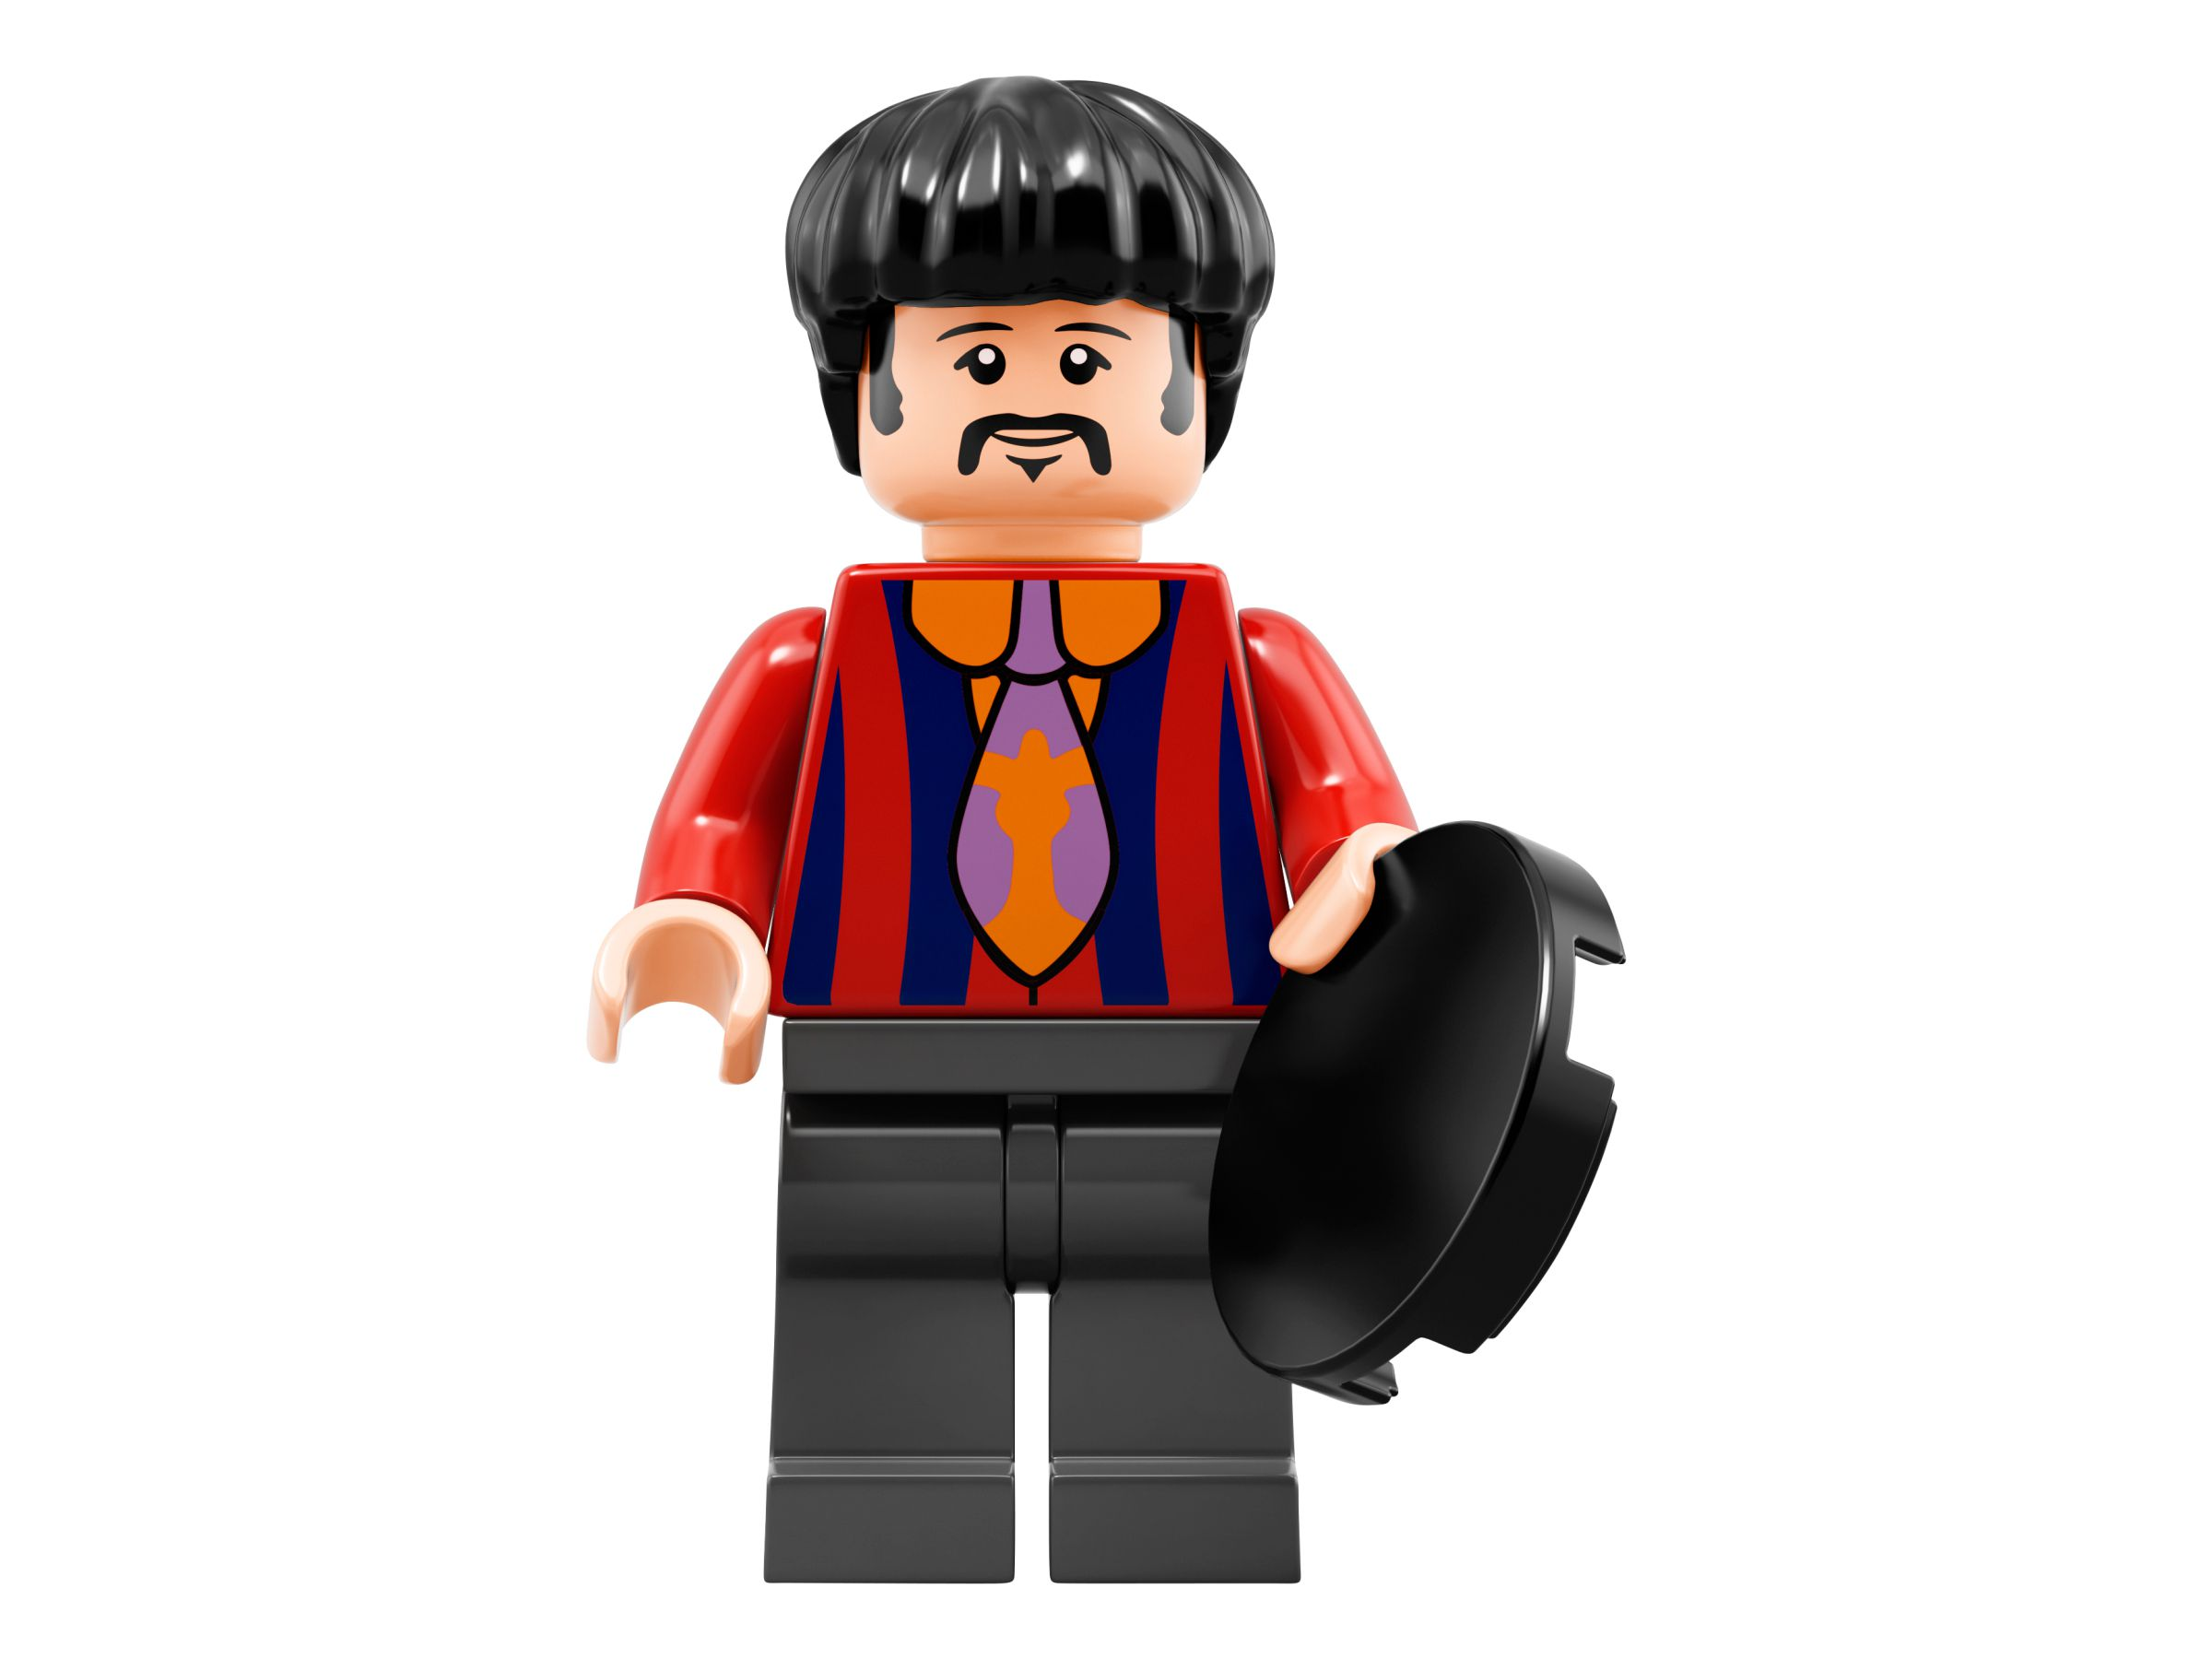 LEGO Ideas 21306 Yellow Submarine LEGO_21306_alt8.jpg